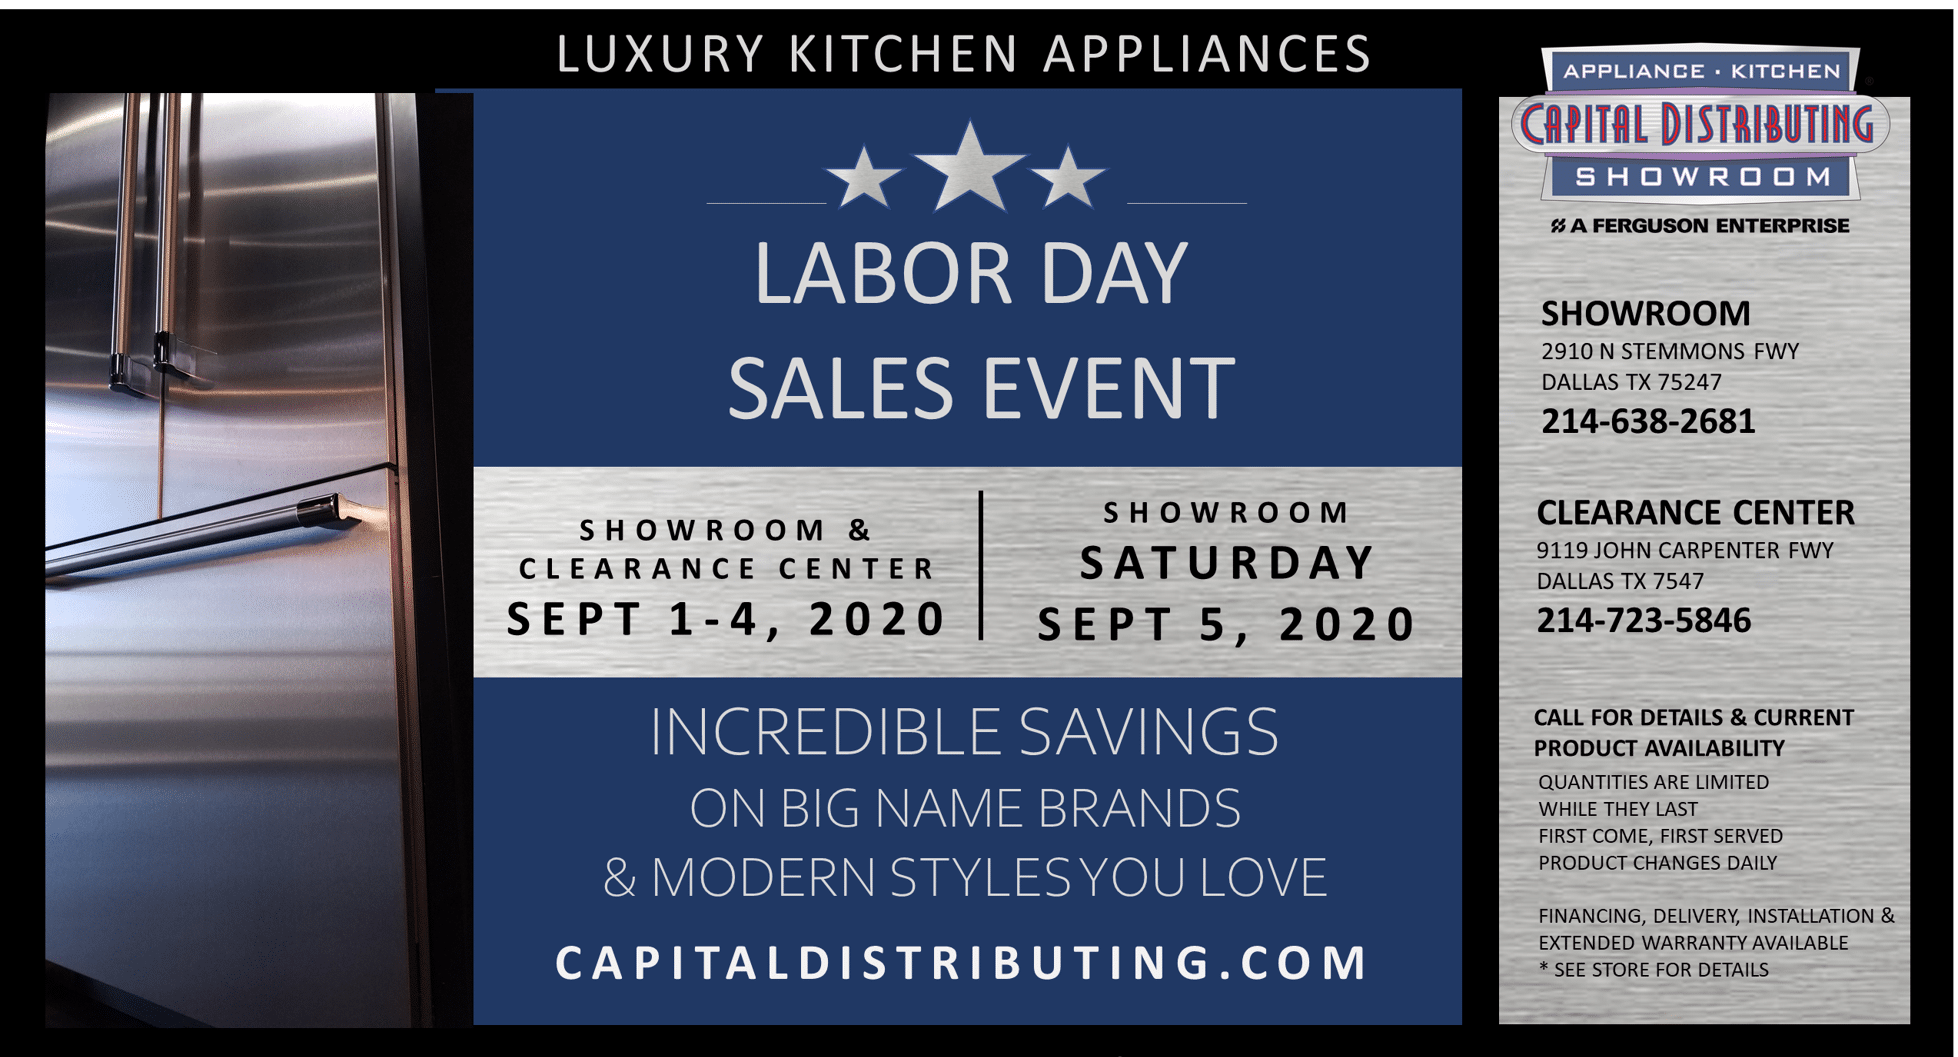 Labor Day Sales Event | Capital Distributing